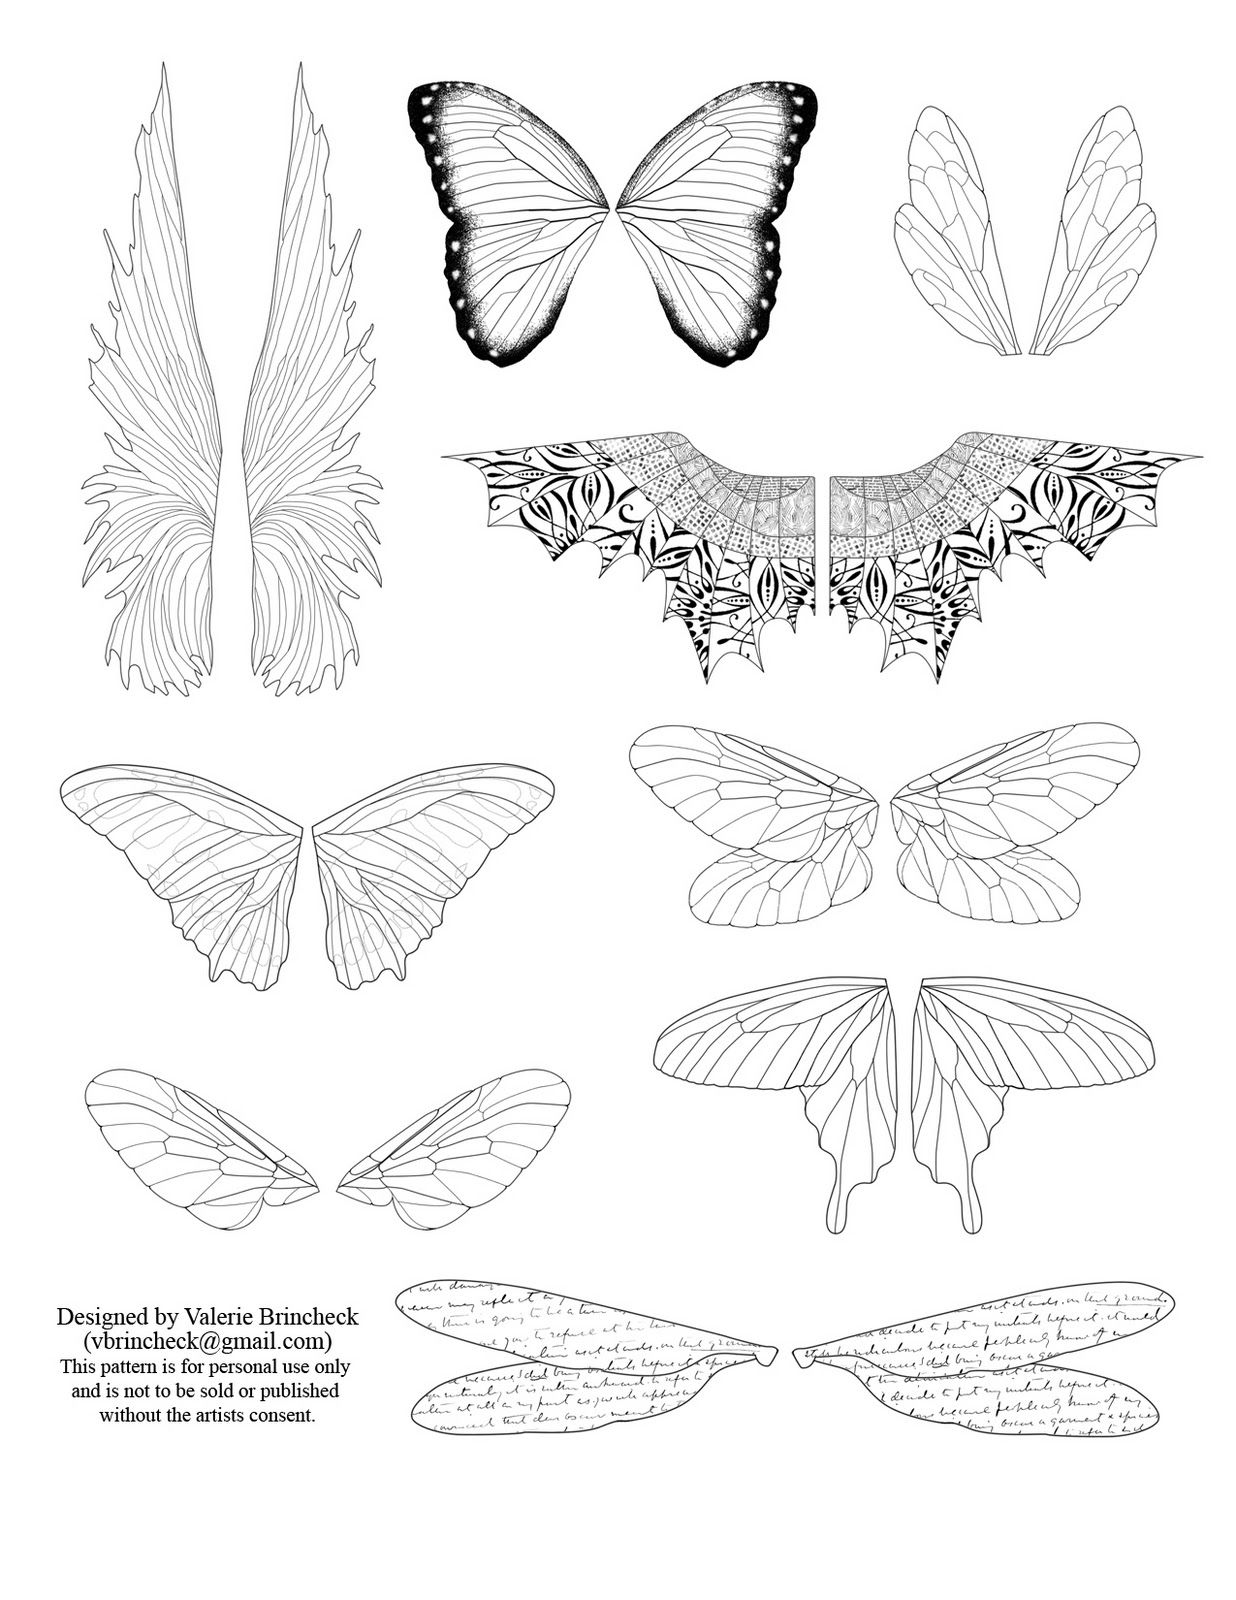 graphic regarding Free Printable Fairy Wings named Free of charge Fairy Paper Dolls Printable Toward obtain simply click upon the